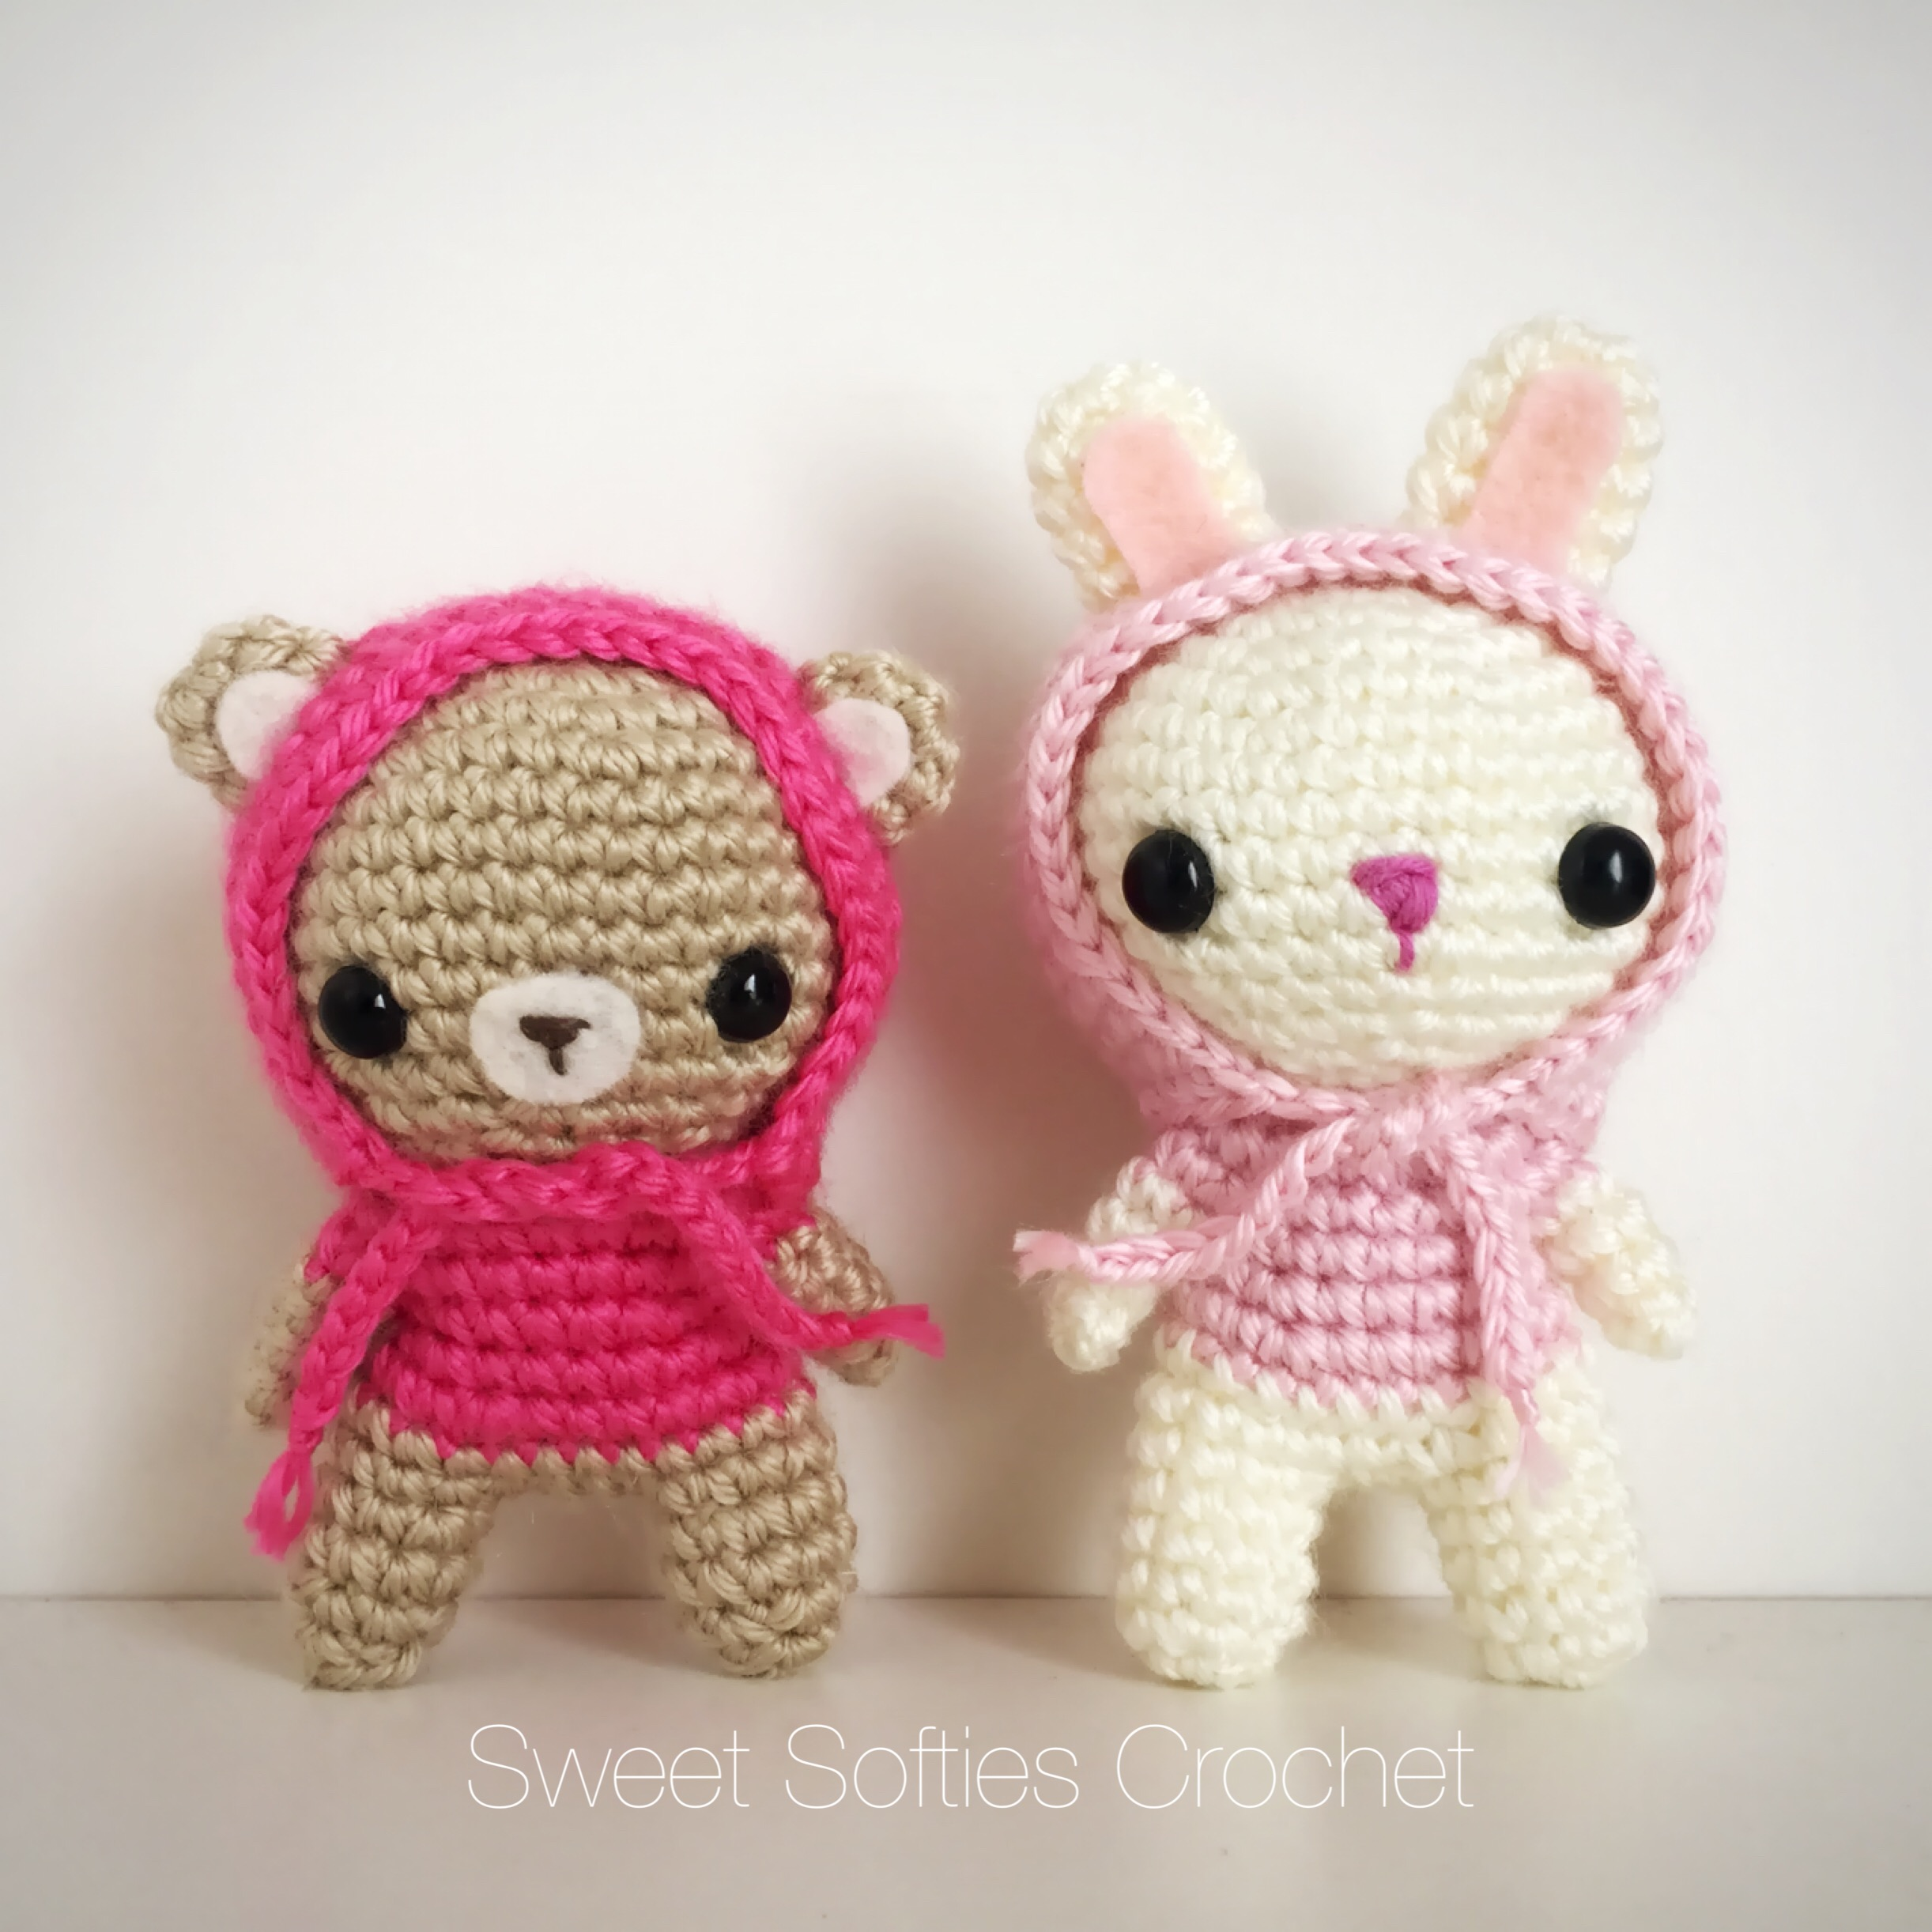 2-PATTERN PACK! Hooded Bunny & Bear Amigurumi Dolls